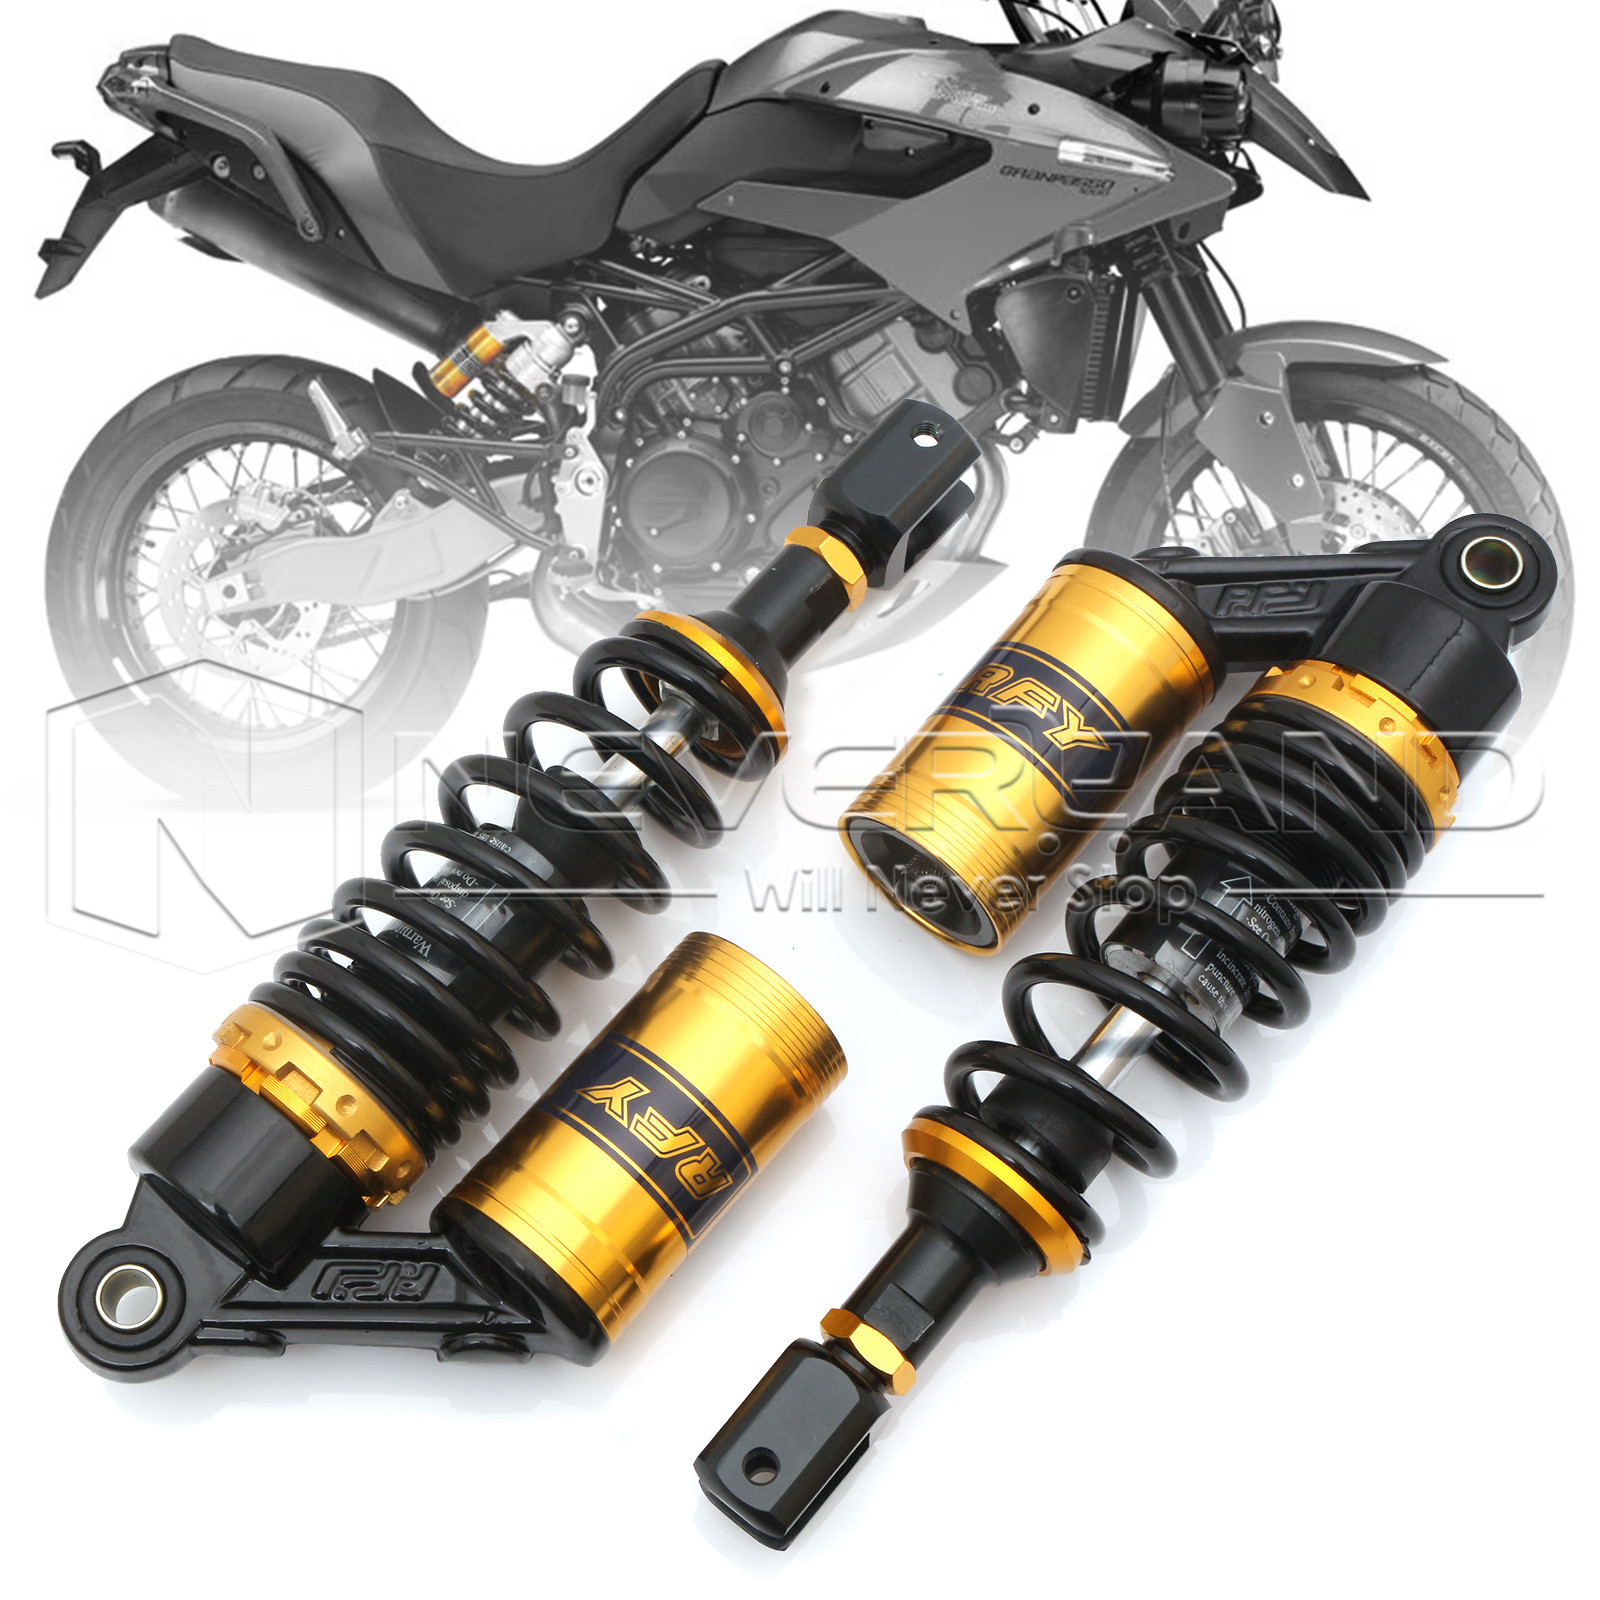 Universal 11 280mm Motorcycle Air Shock Absorber Rear Suspension Spring Damper Replacement For Yamaha Black & Gold D30